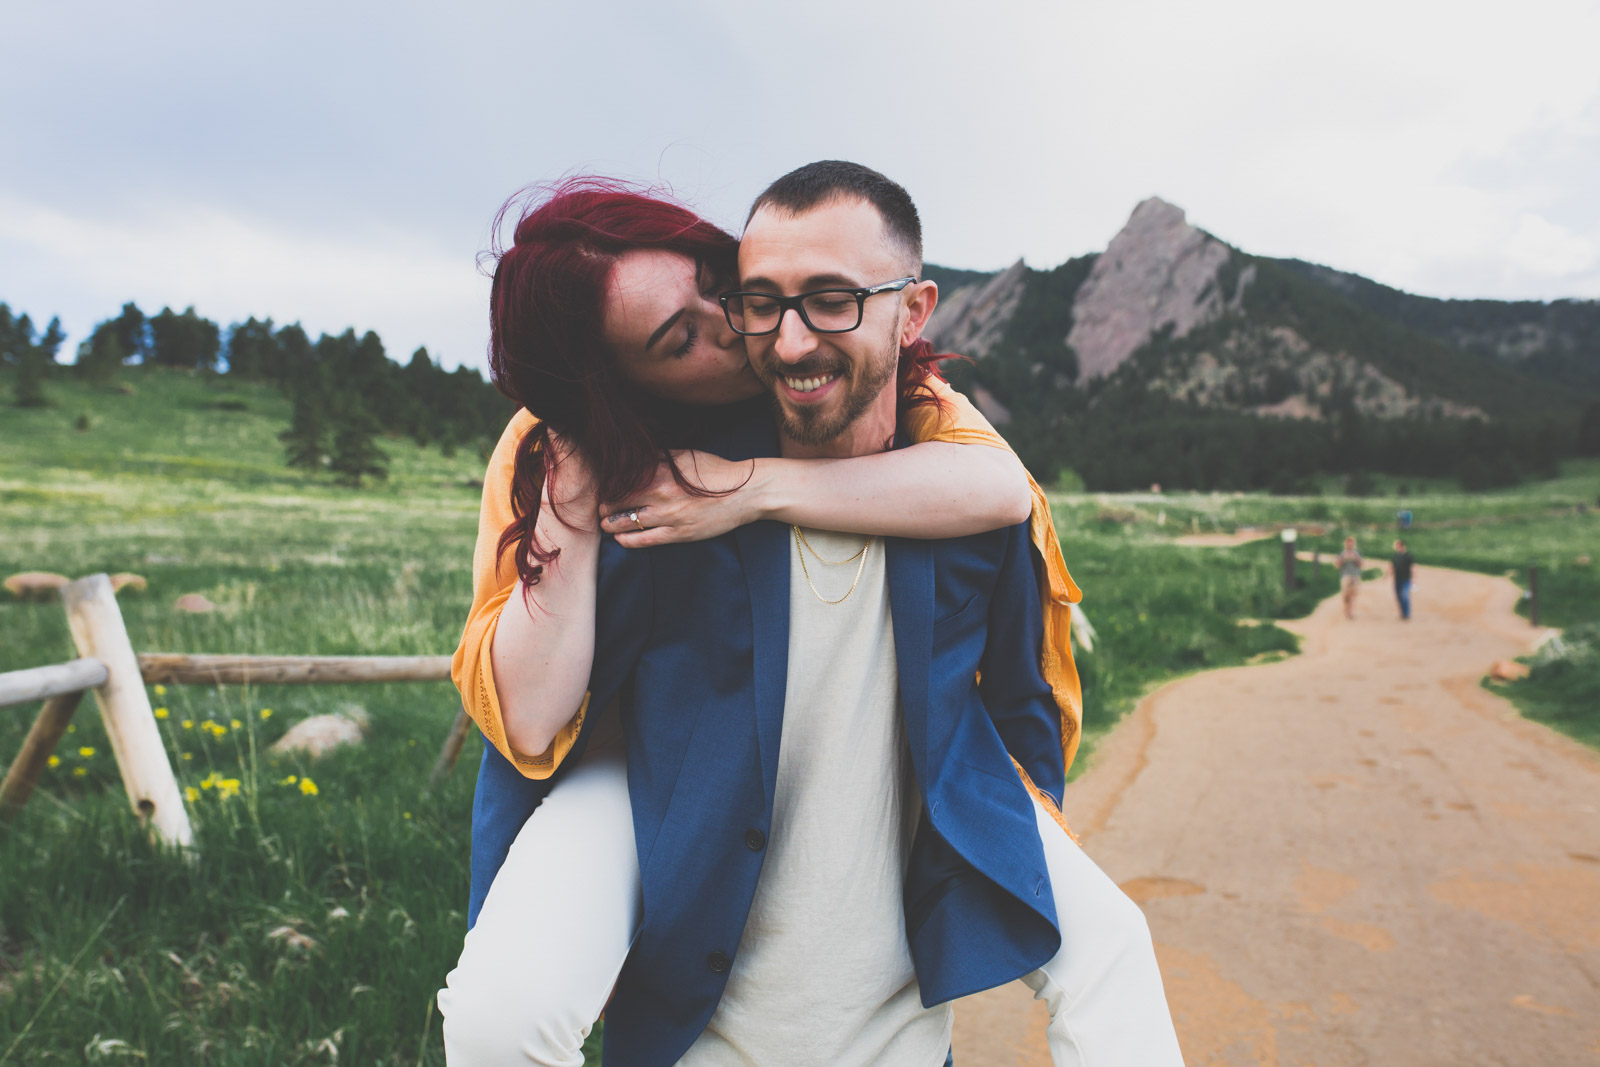 piggy back ride summer engagement session- Chautauqua Park, Boulder Colorado